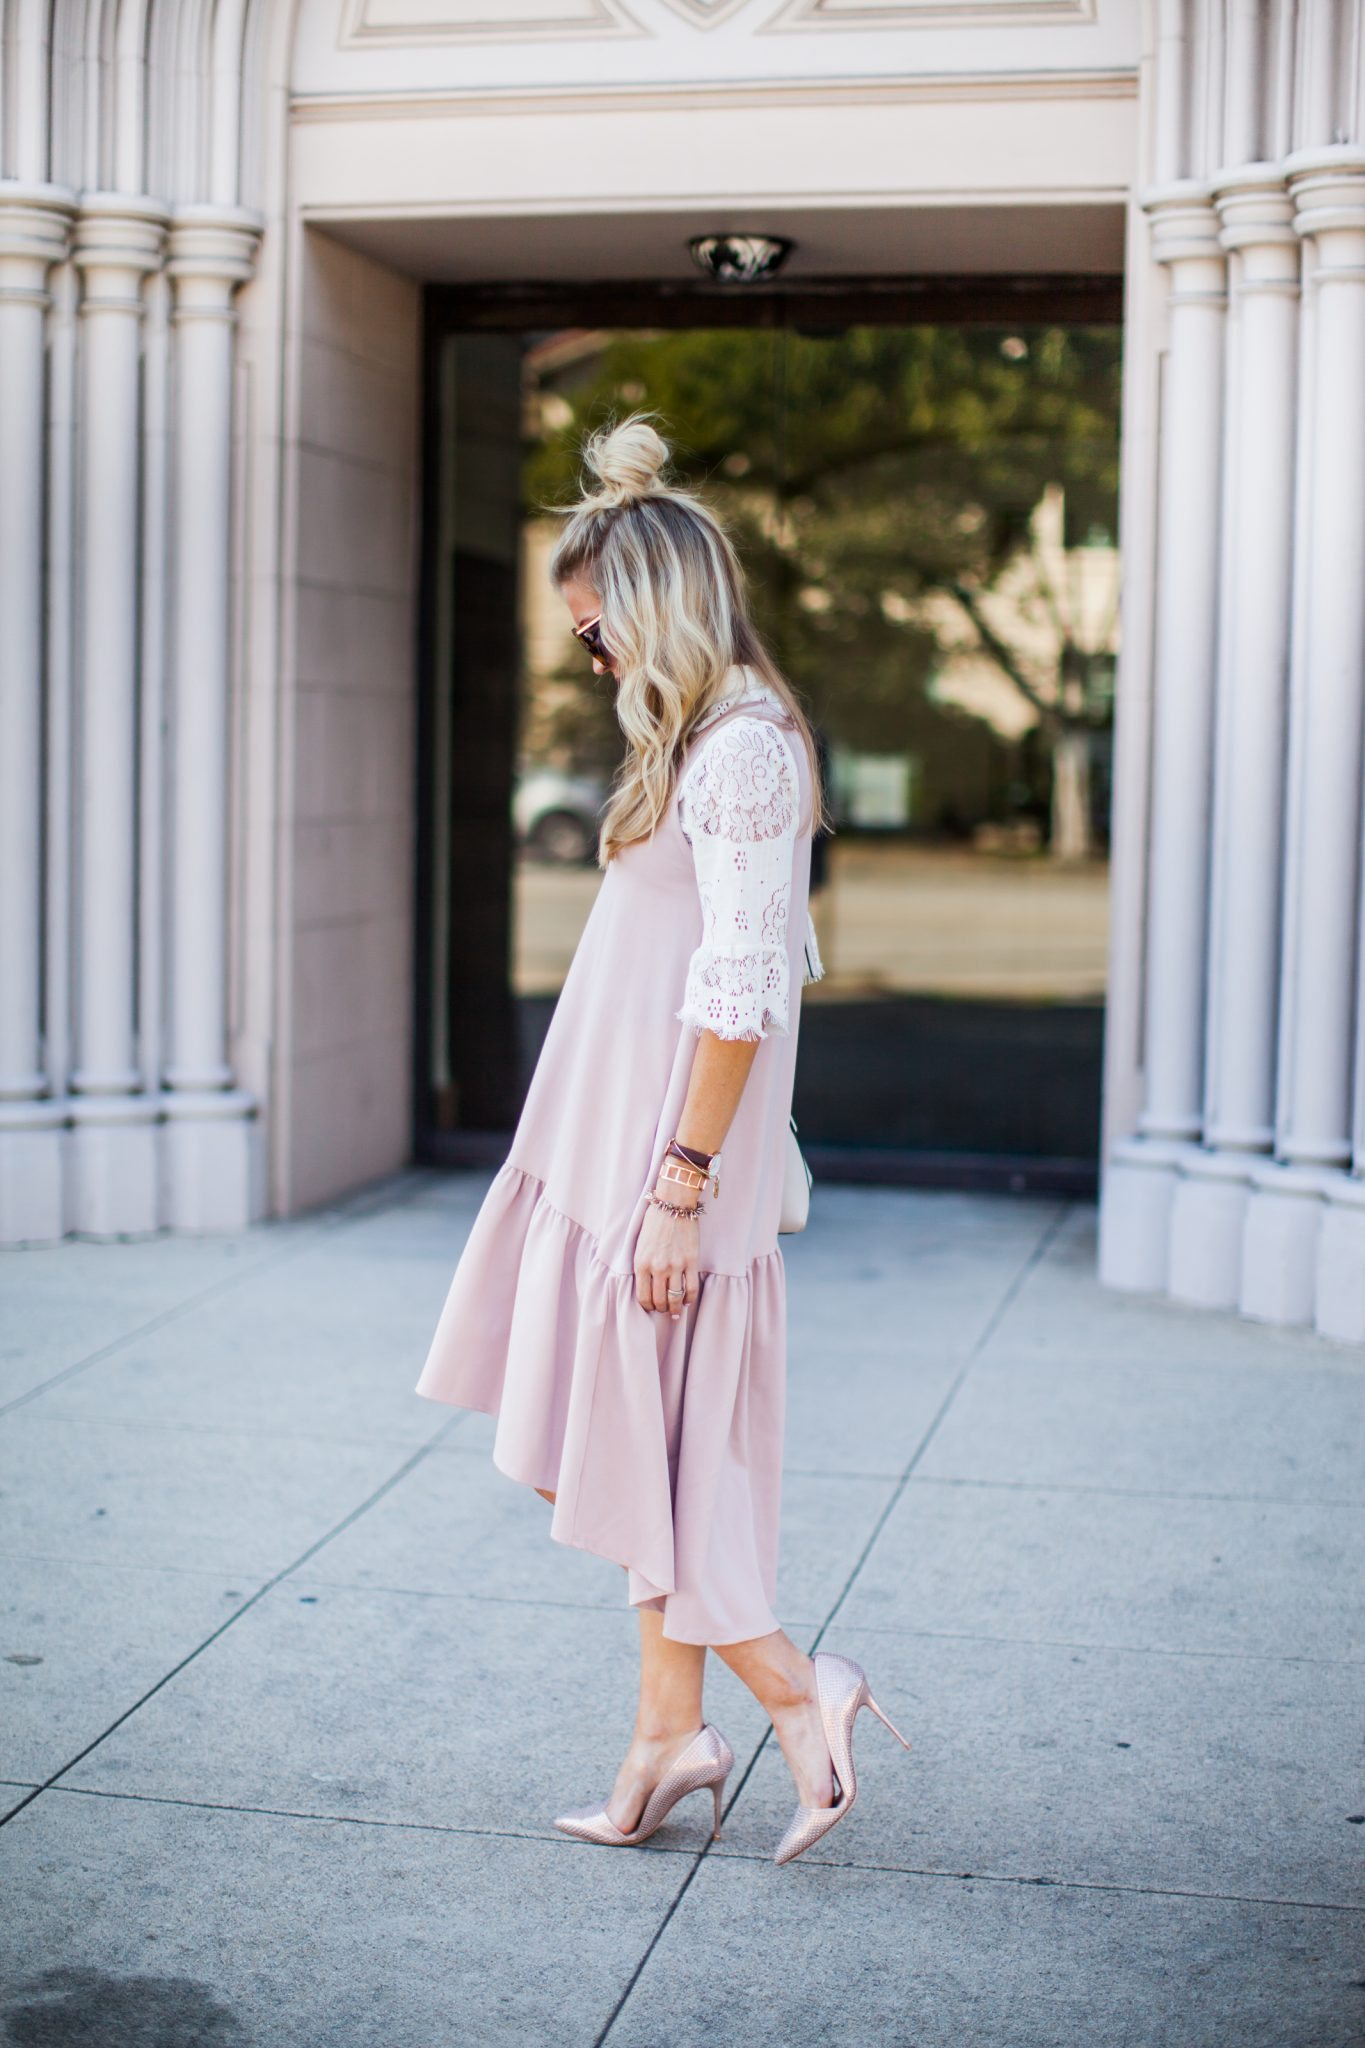 Blush ruffle drop waist dress + lace top